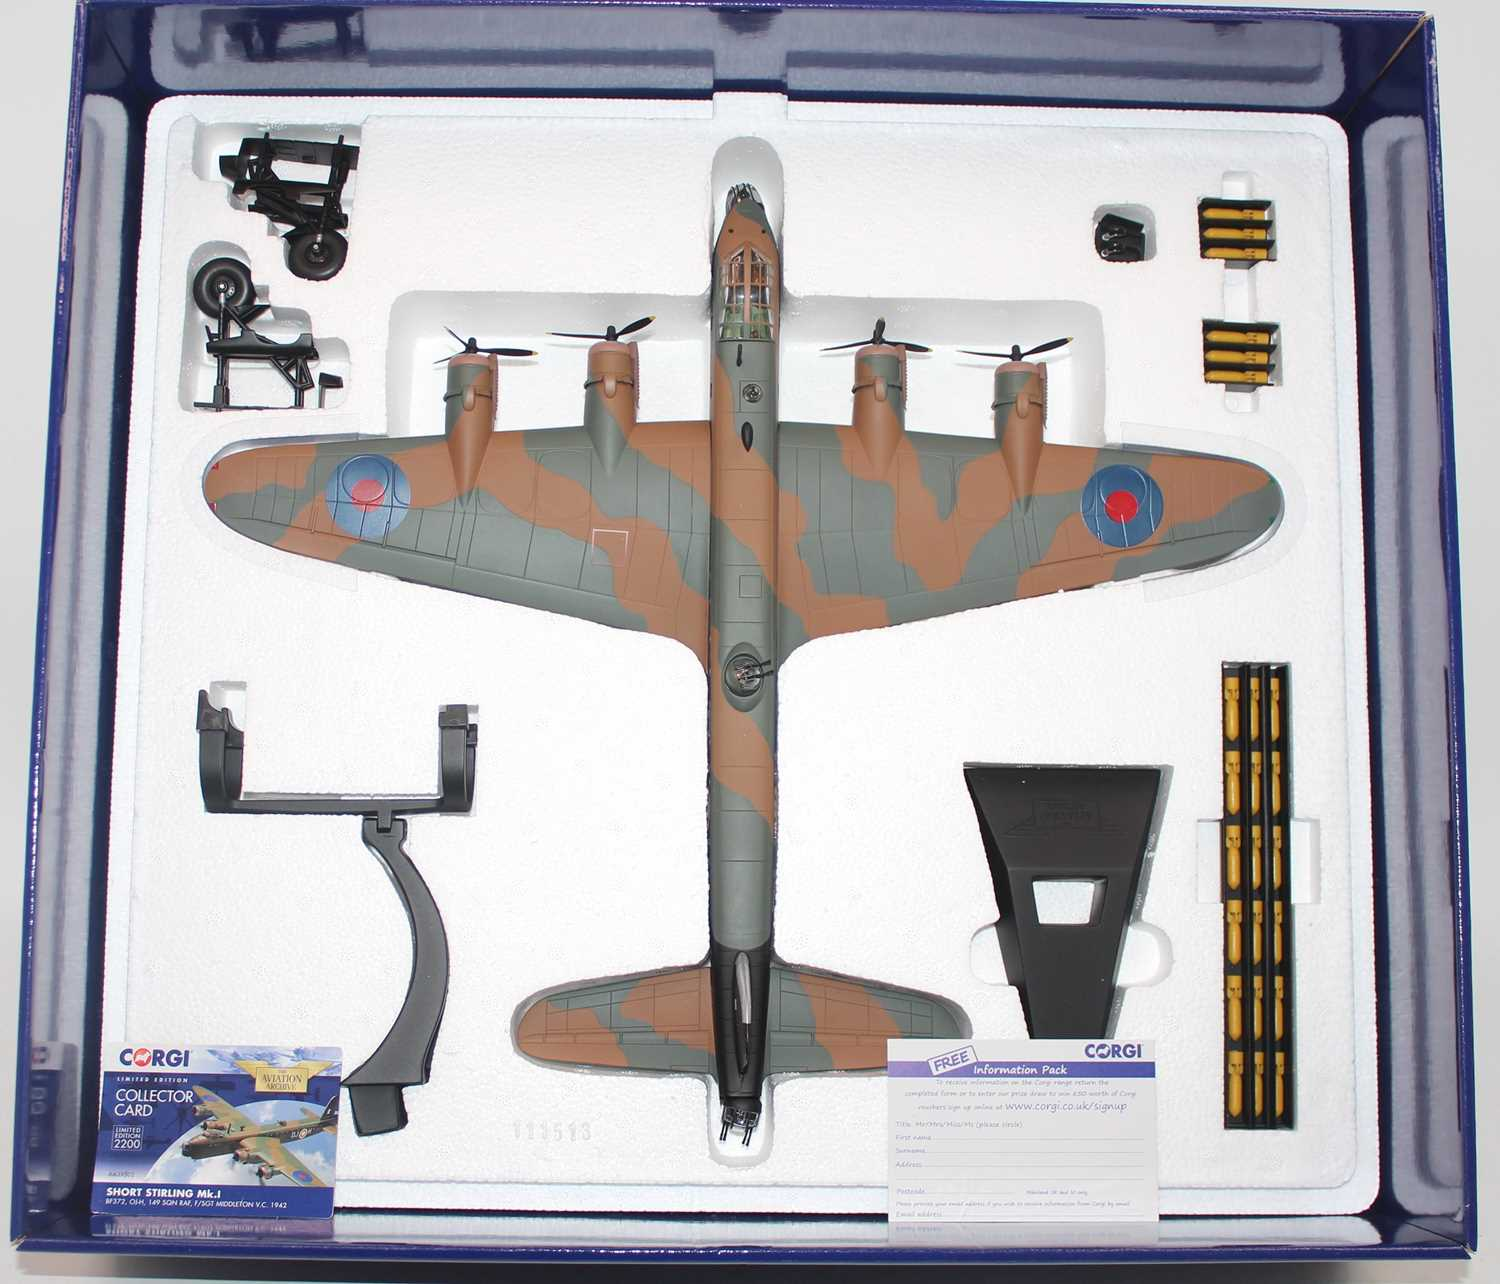 A Corgi Aviation Archive model No. AA39502 limited edition 1/72 scale diecast model of a Short - Image 2 of 2